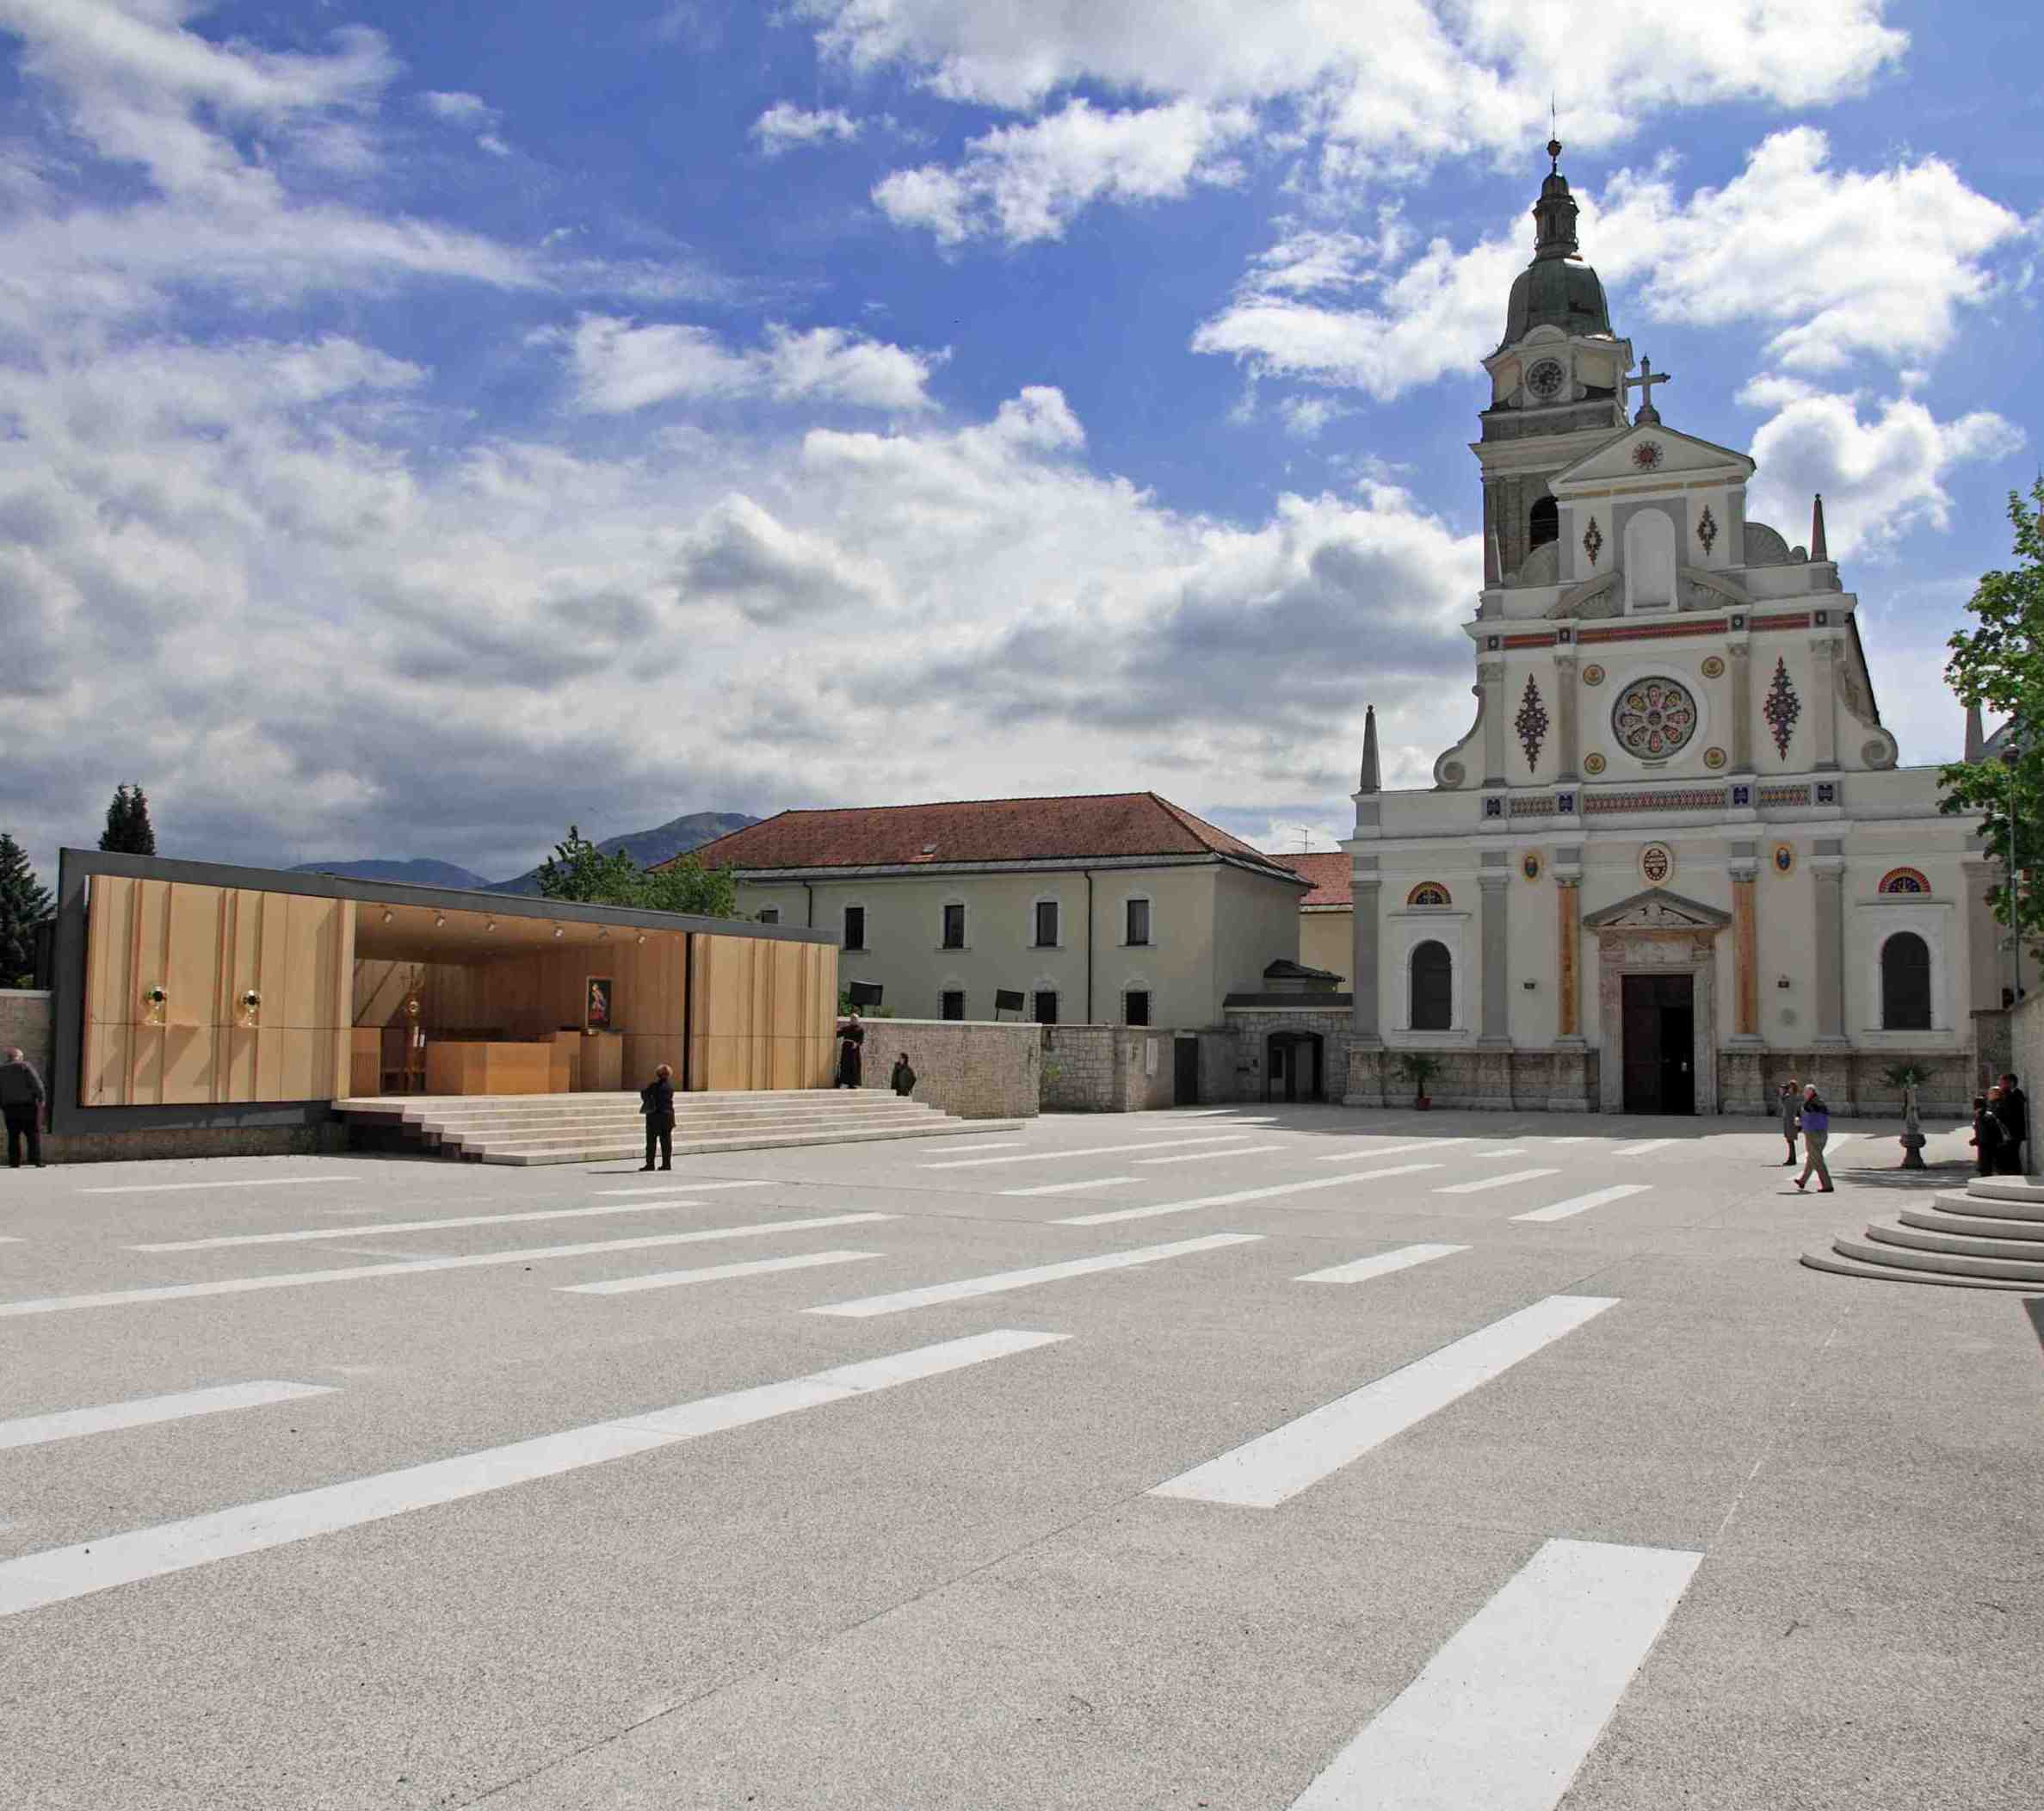 Maruša Zorec - Modern chapel in the historic piazza of Brezje Slovenia, which allows for large numbers of 'pilgrims' to take mass in the open square, outside the old historic church. Large hinged doors allow the chapel to be opened and closed.